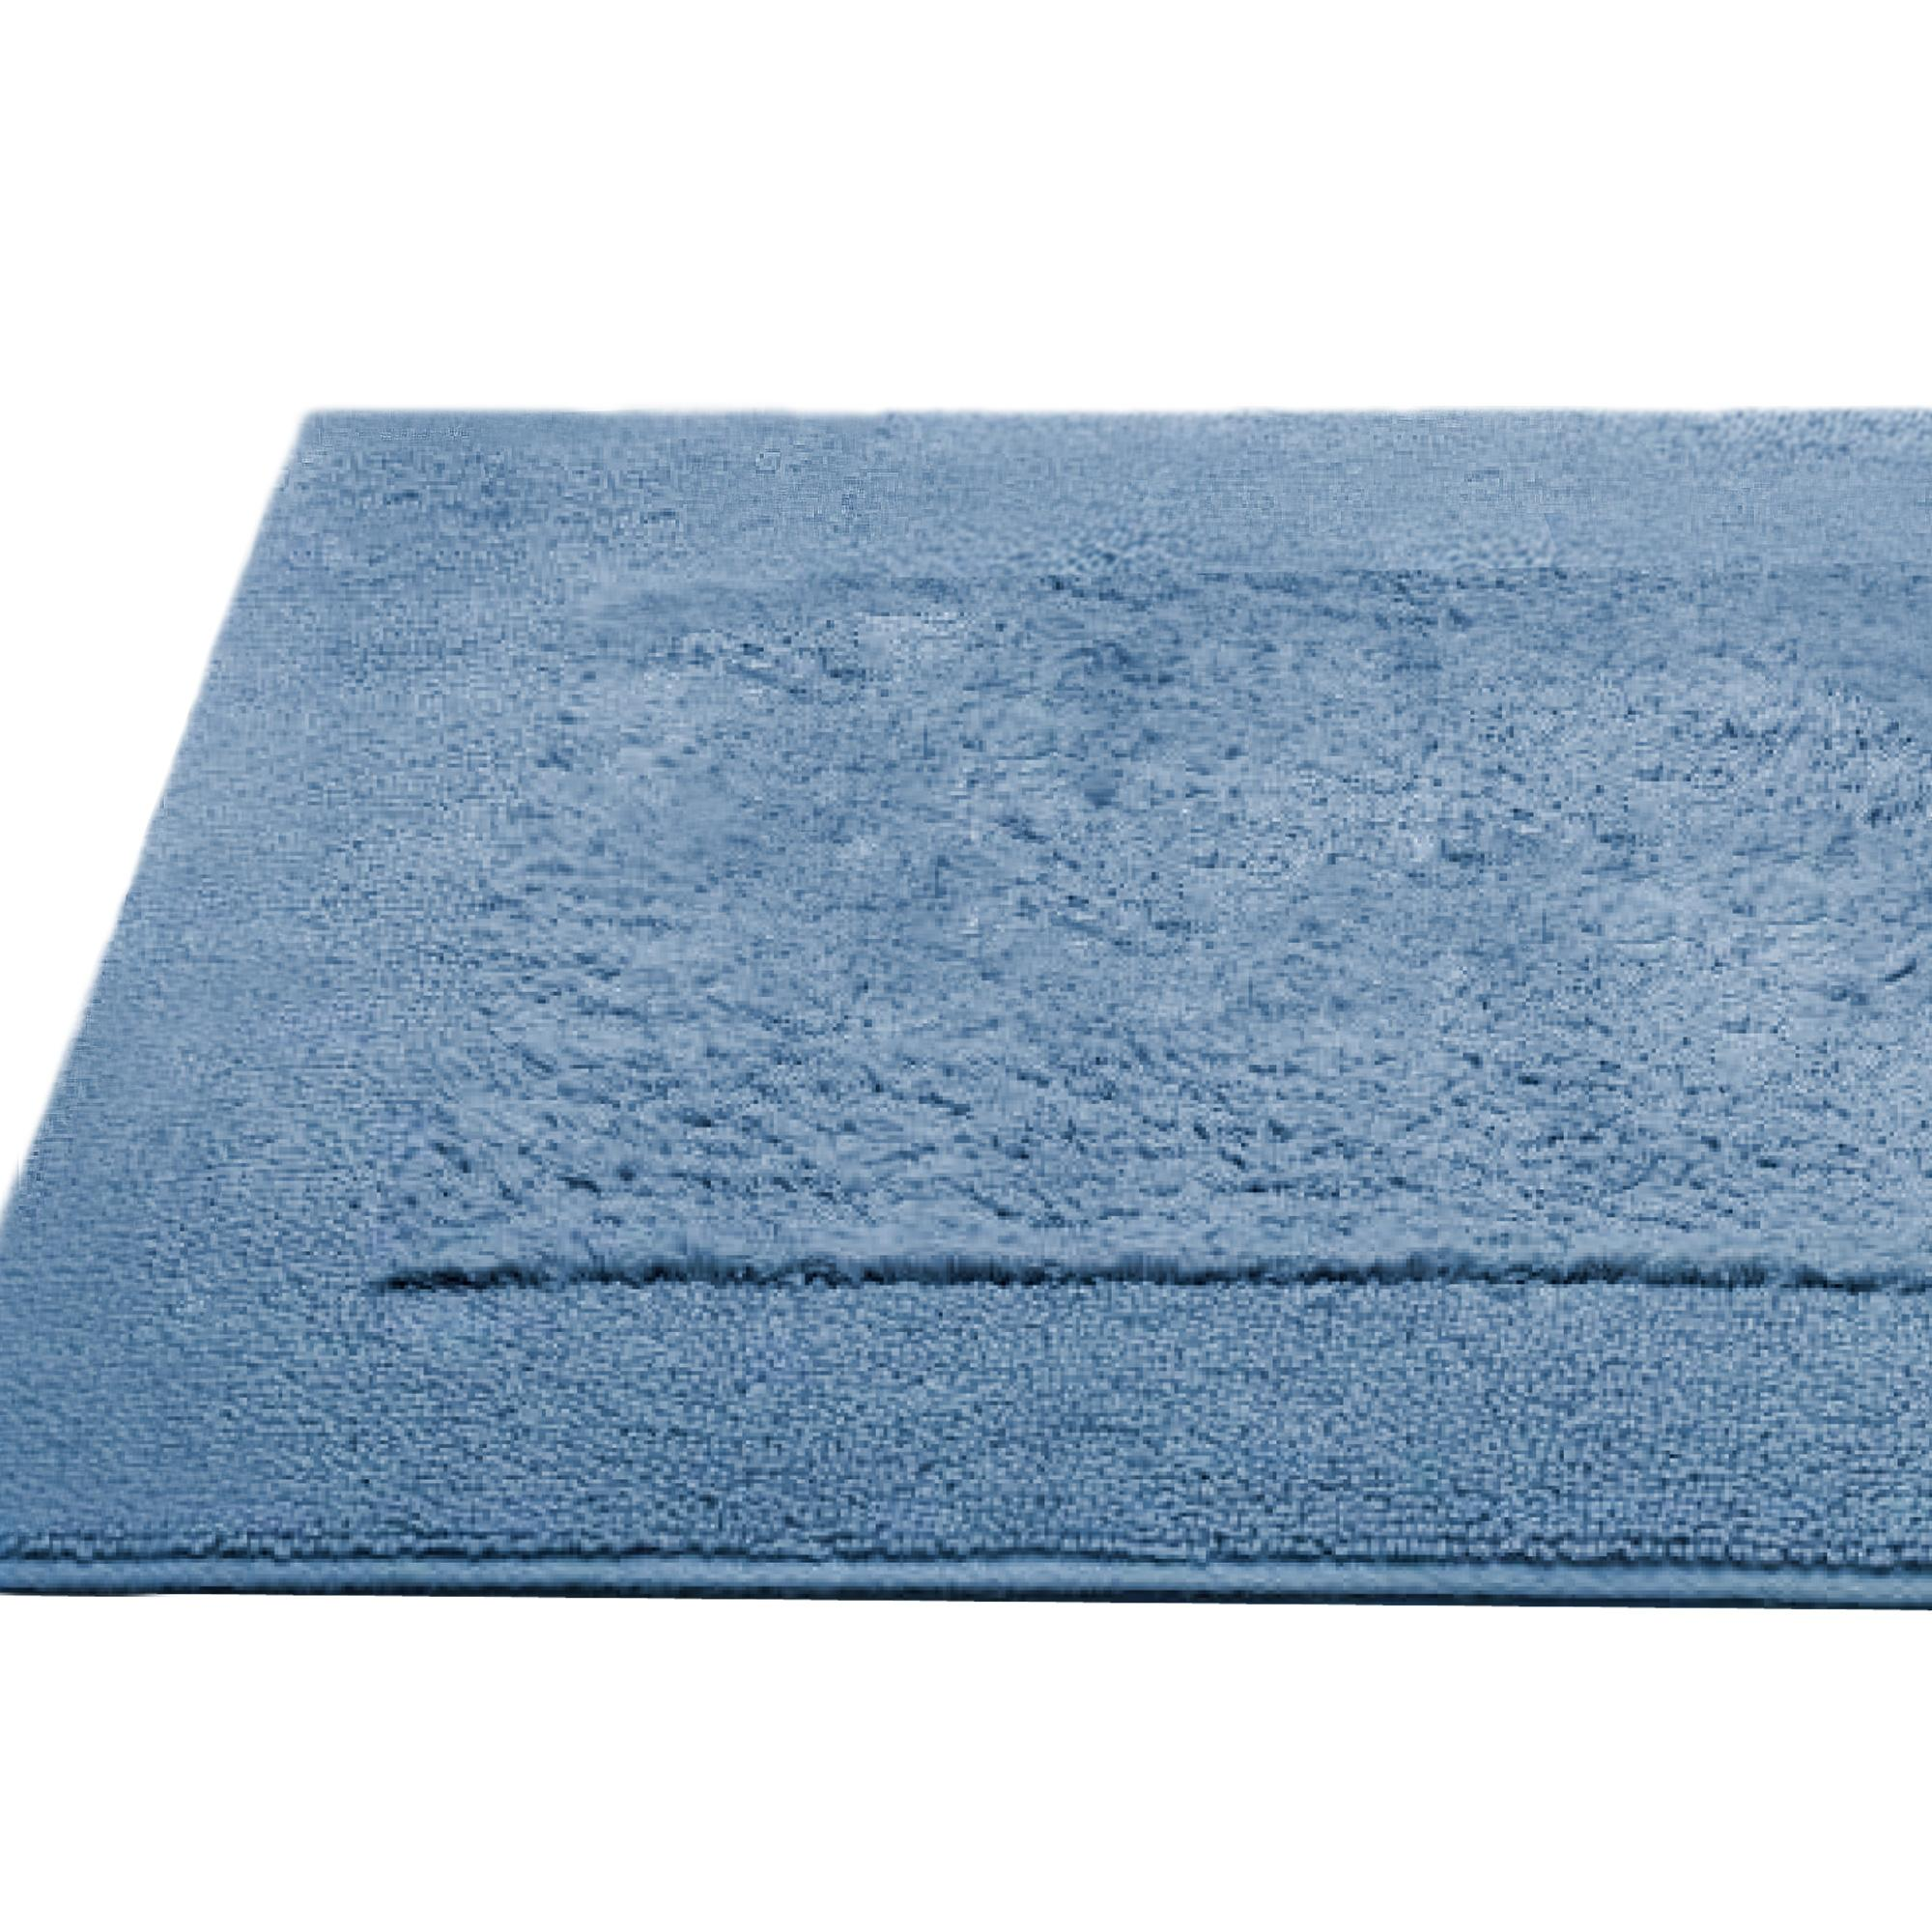 tapis de bain 70x120 dream bleu gris 2000g m2 ebay. Black Bedroom Furniture Sets. Home Design Ideas